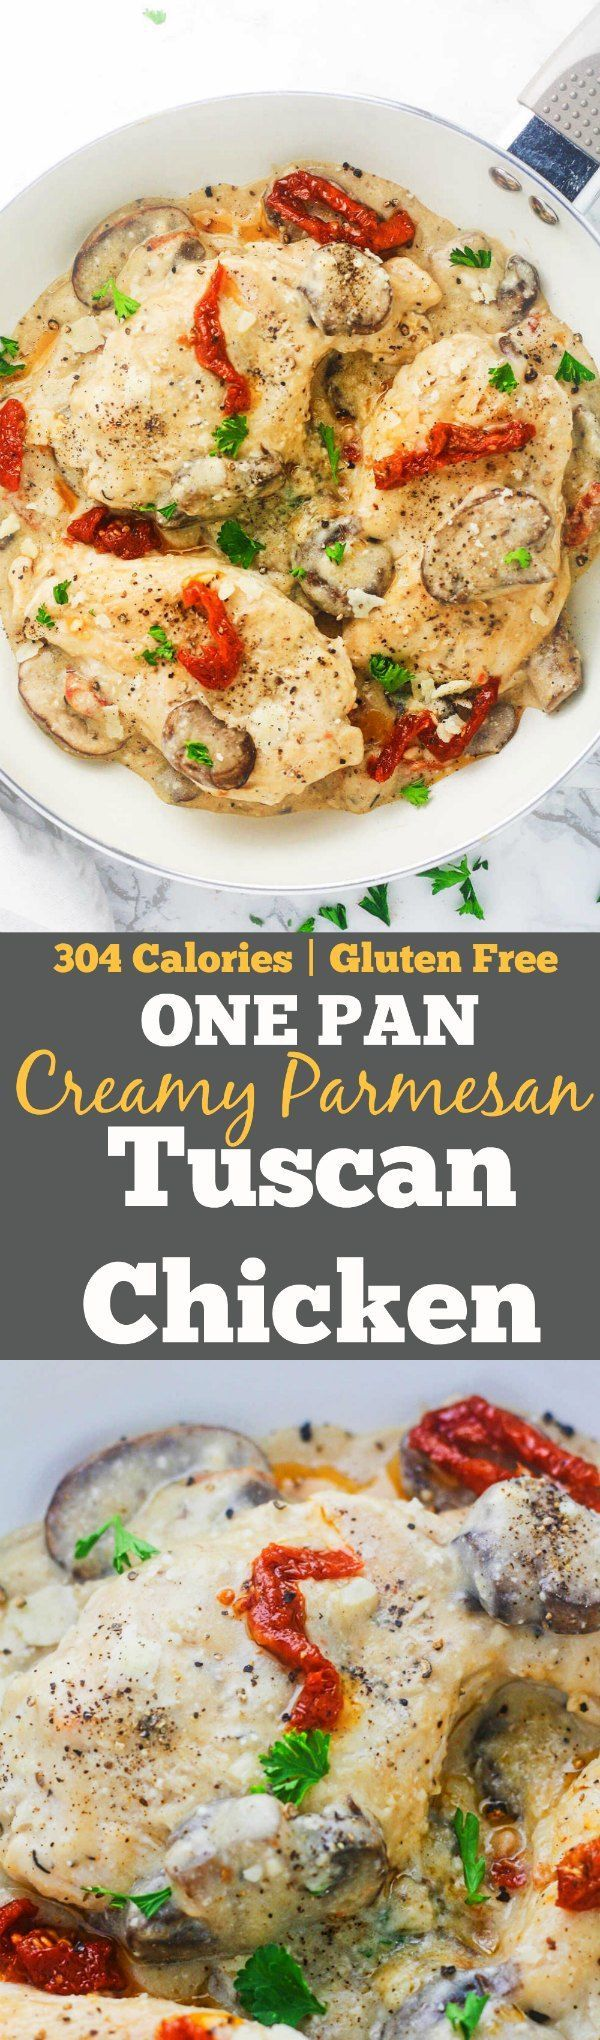 One pan, creamy Parmesan Tuscan Chicken. Succulent chicken breasts, coated in a deliciously creamy Greek yogurt Parmesan sauce and topped with sun-dried tomatoes. This one pan meal is packed with flavors while still being gluten free and low calorie! www.itscheatdayev...